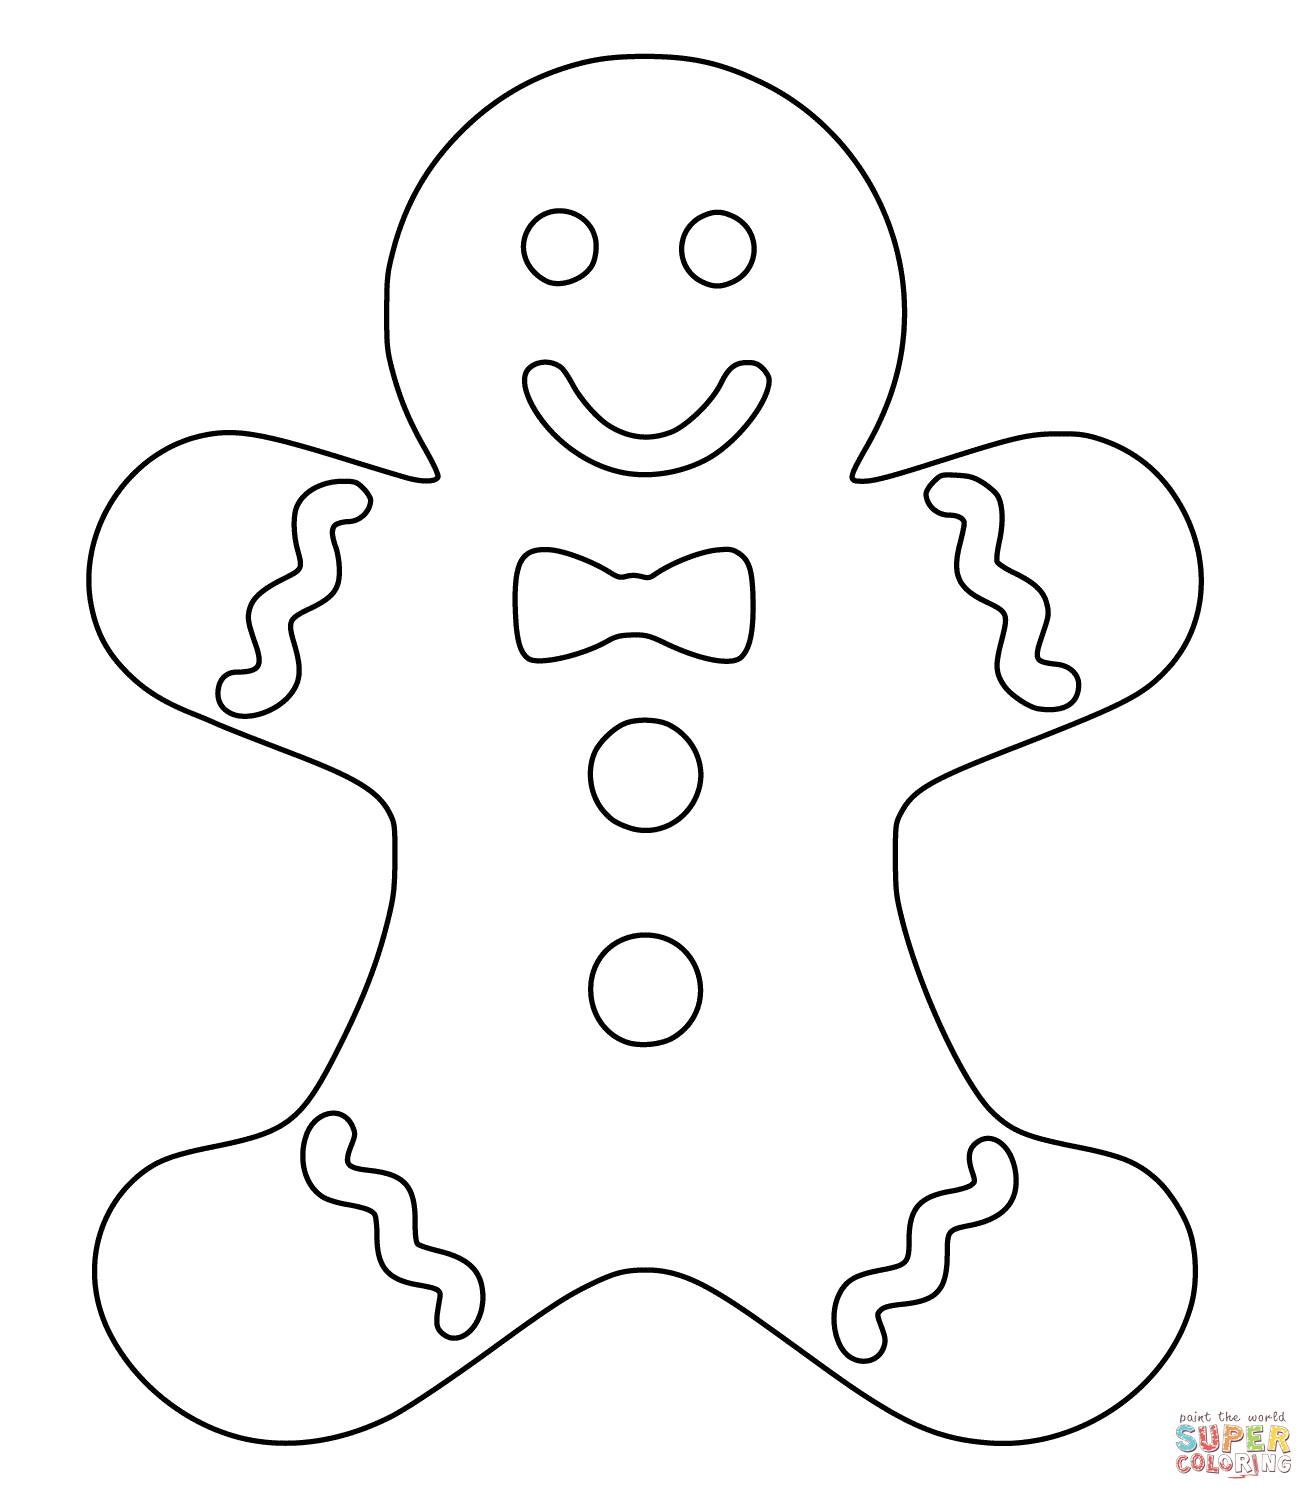 gingerbread man coloring pages printable beautiful printable gingerbread man coloring pages top man printable pages gingerbread coloring